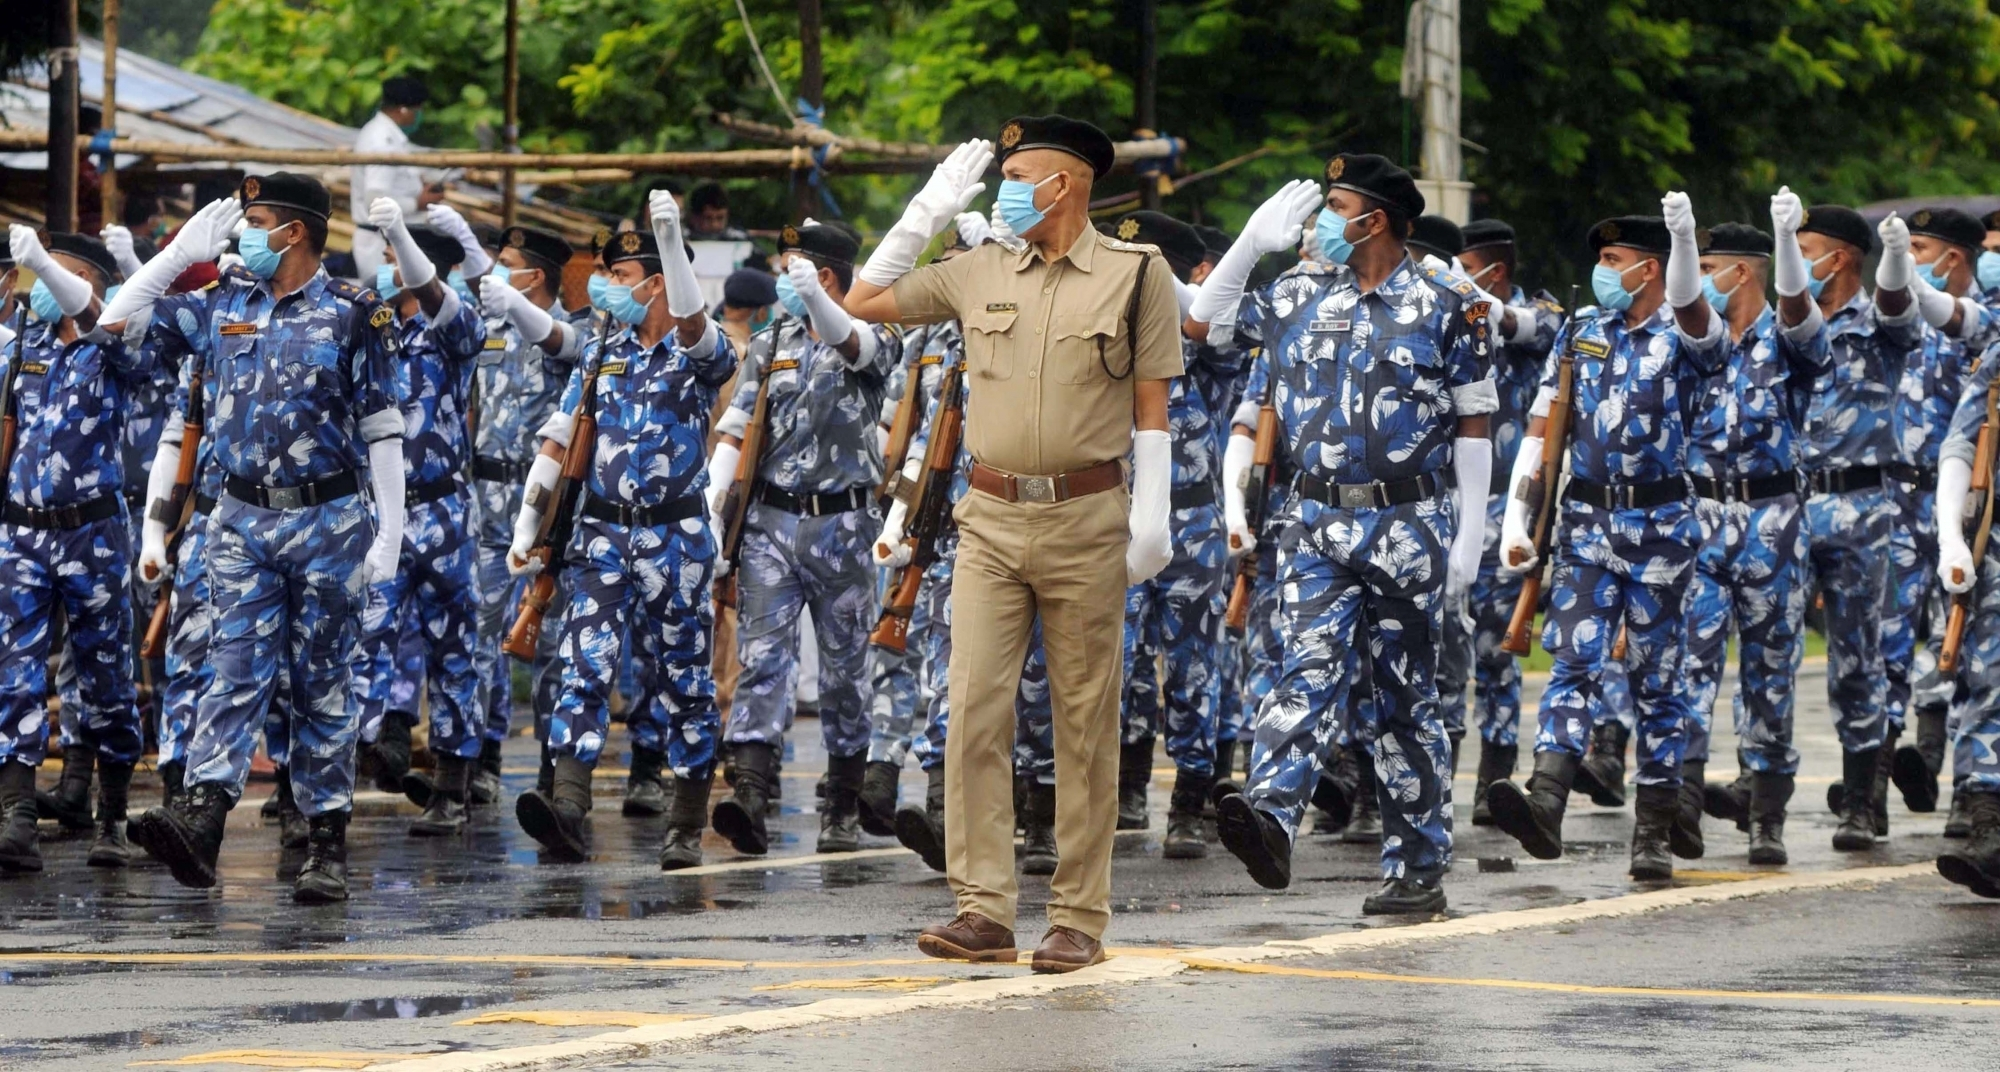 Kolkata : Kolkata police department wearing face masks, take part in a rehearsal ahead of the upcoming Independence Day parade at Red Road, in Kolkata on Aug 09, 2020. (Photo: IANS)